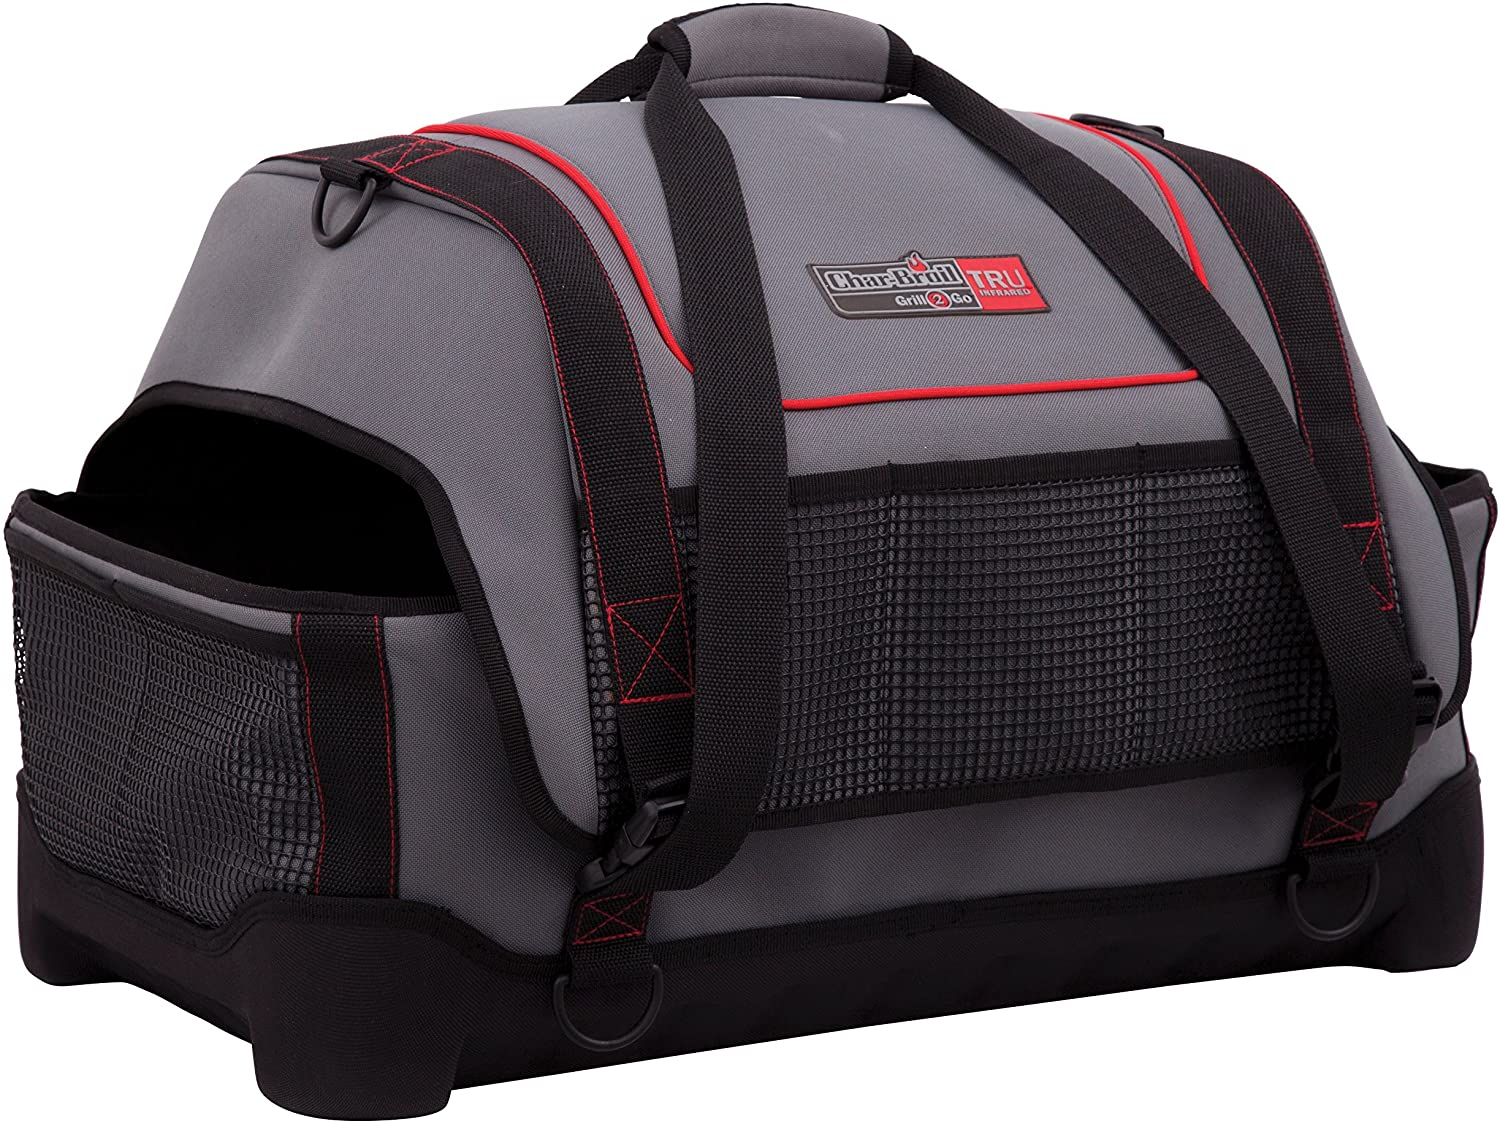 Char-Broil X200 Grill2Go Portable Gas Grill